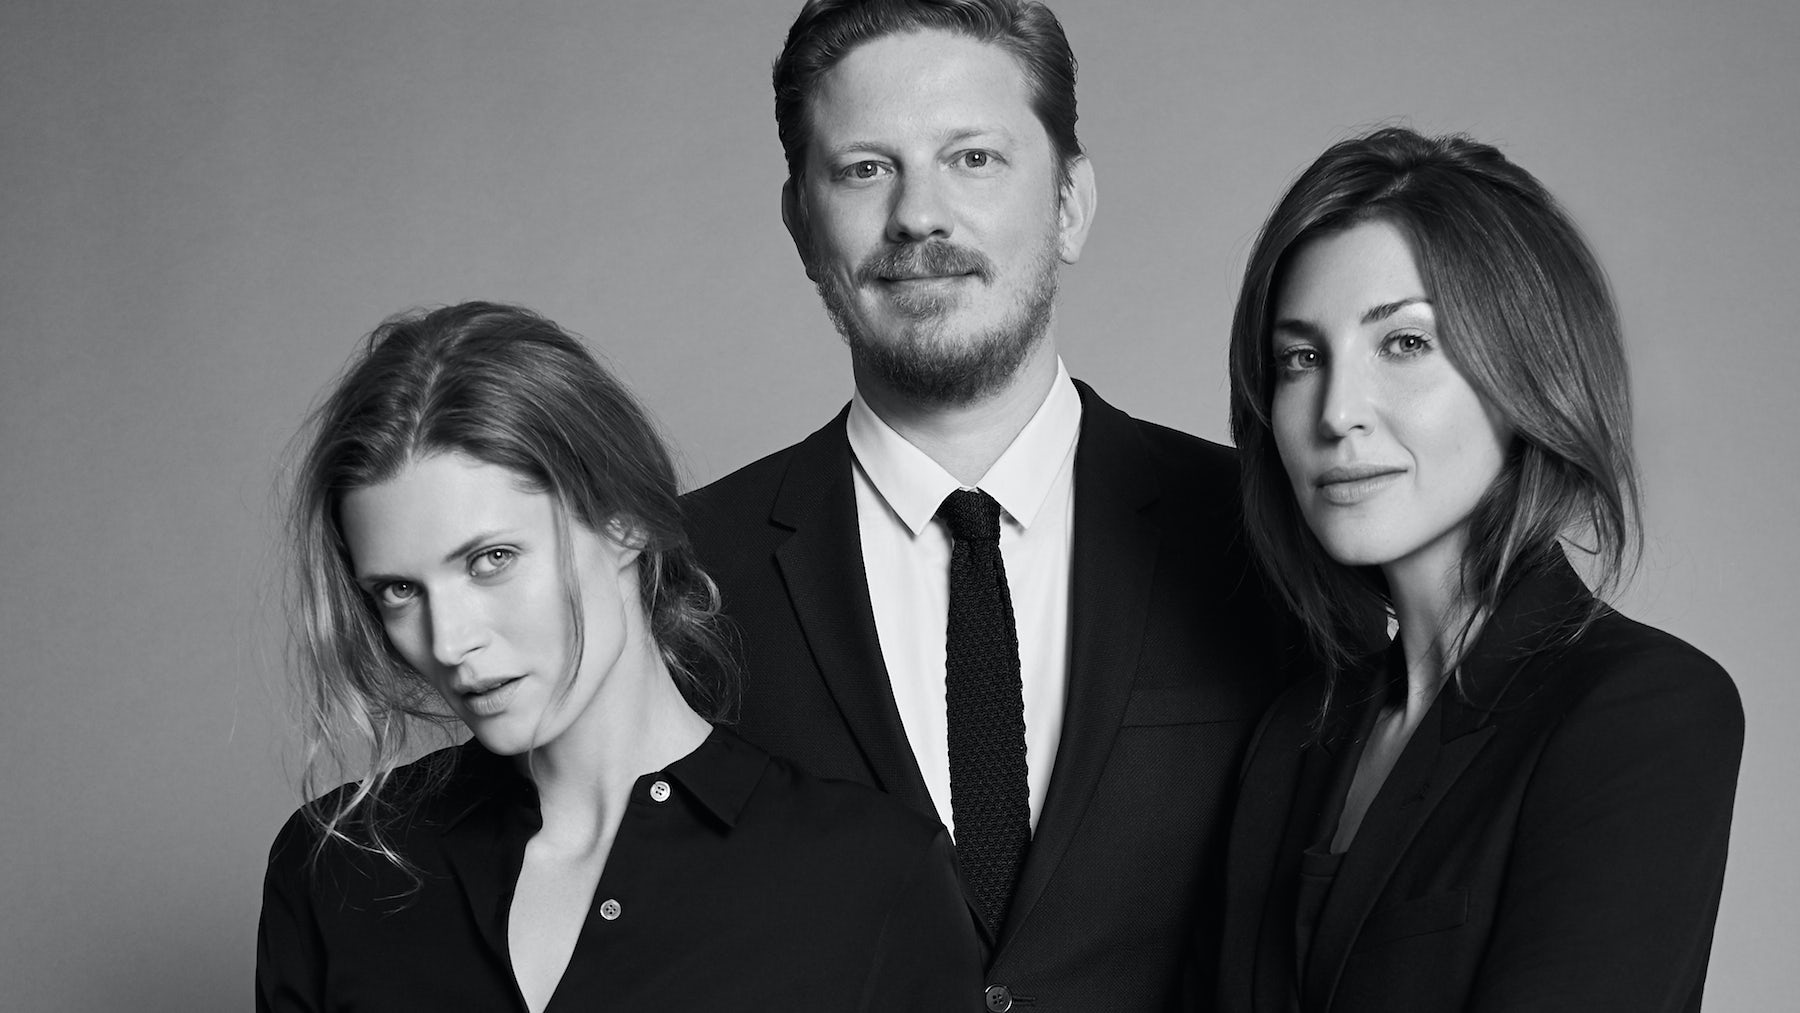 The Polish edition of Vogue will launch with editor Filip Niedenthal, editor-at-large Malgosia Bela and publishing partner Kasia Kulczyk   Source: Courtesy